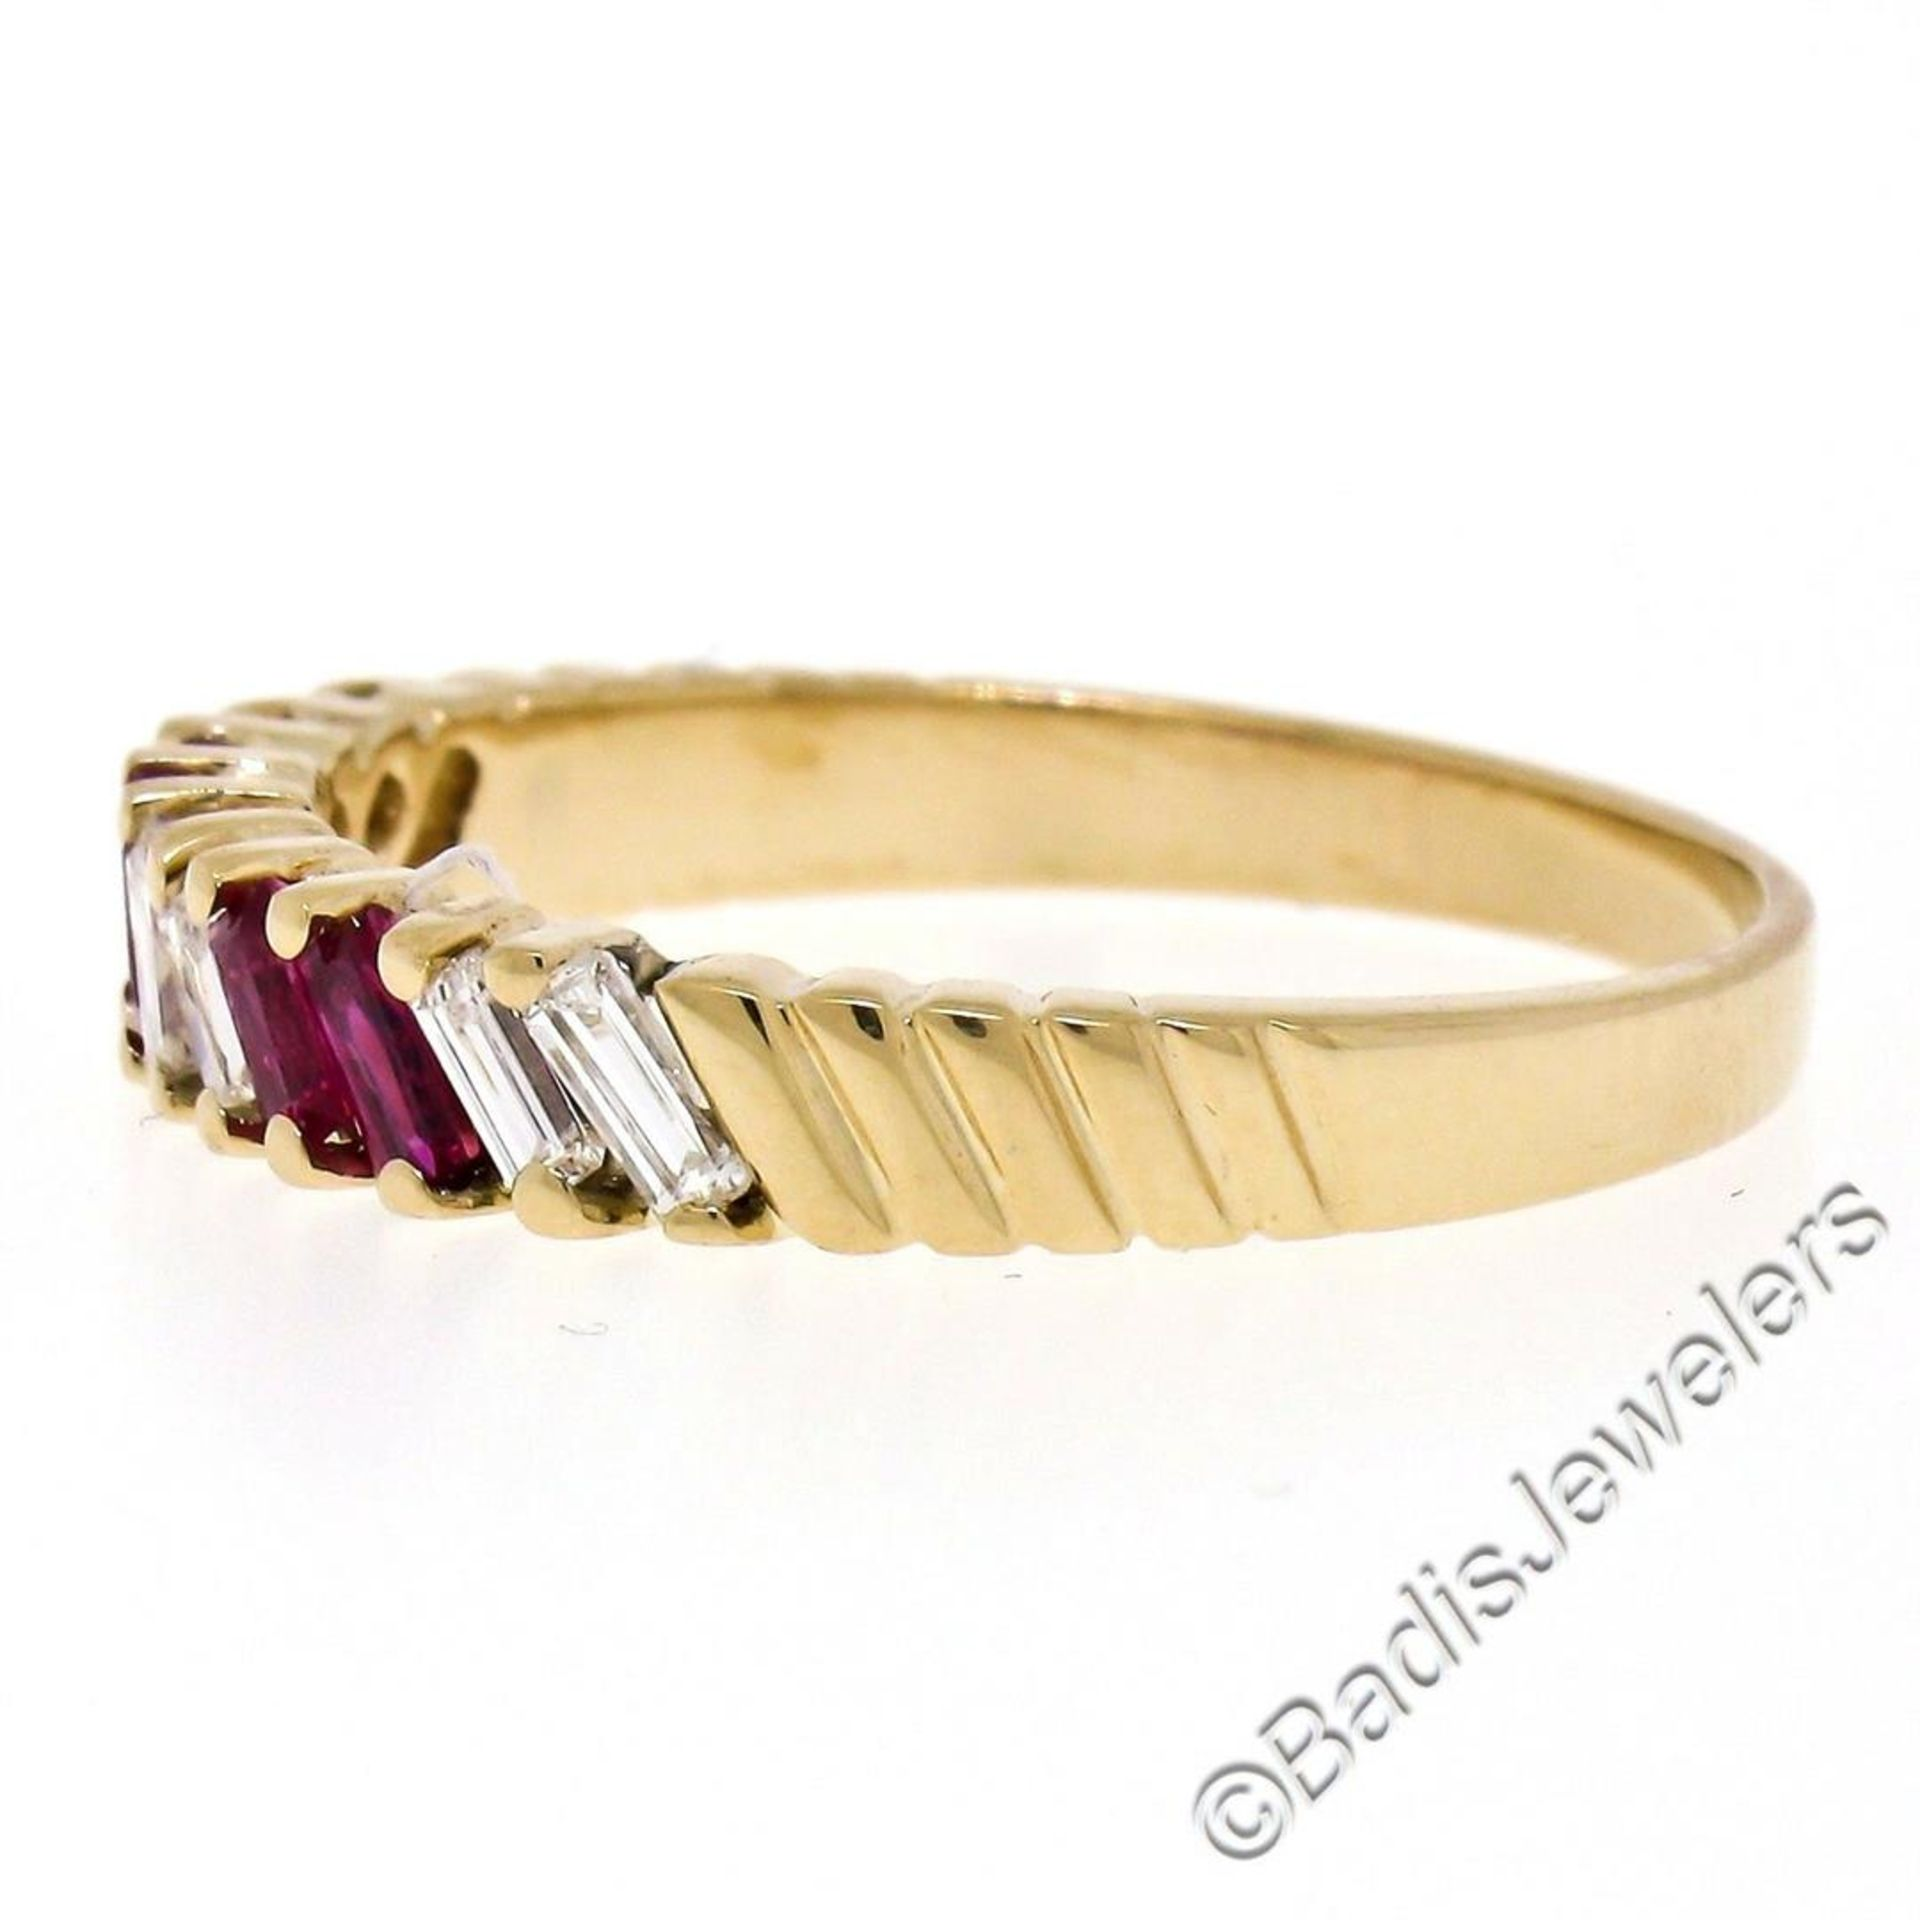 Vintage 18kt Yellow Gold 0.75ctw Baguette Diamond and Ruby Band Ring - Image 2 of 6